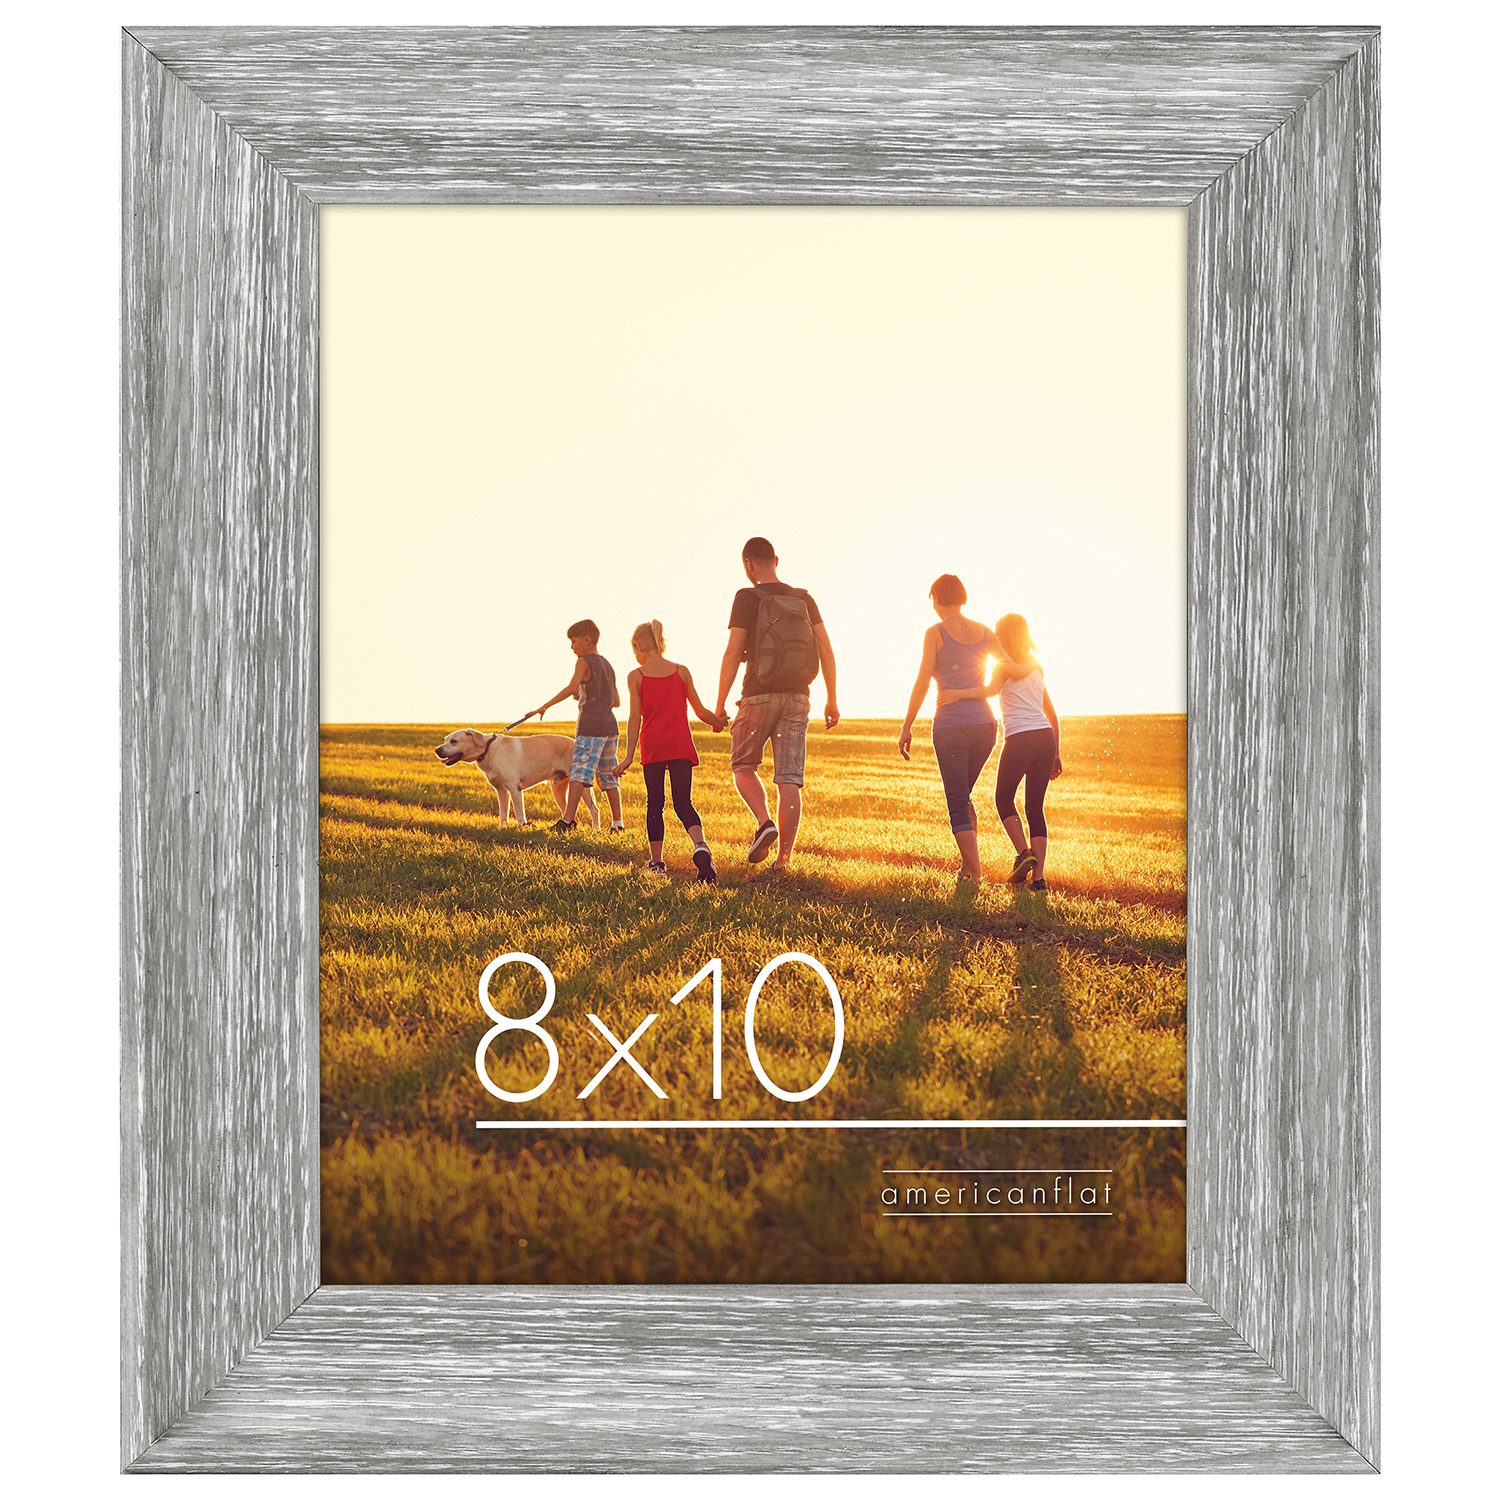 miniature 4 - Americanflat Wood Picture Frame 4x6 5x7 8x10 Wall Tabletop Easel Pick Size Color